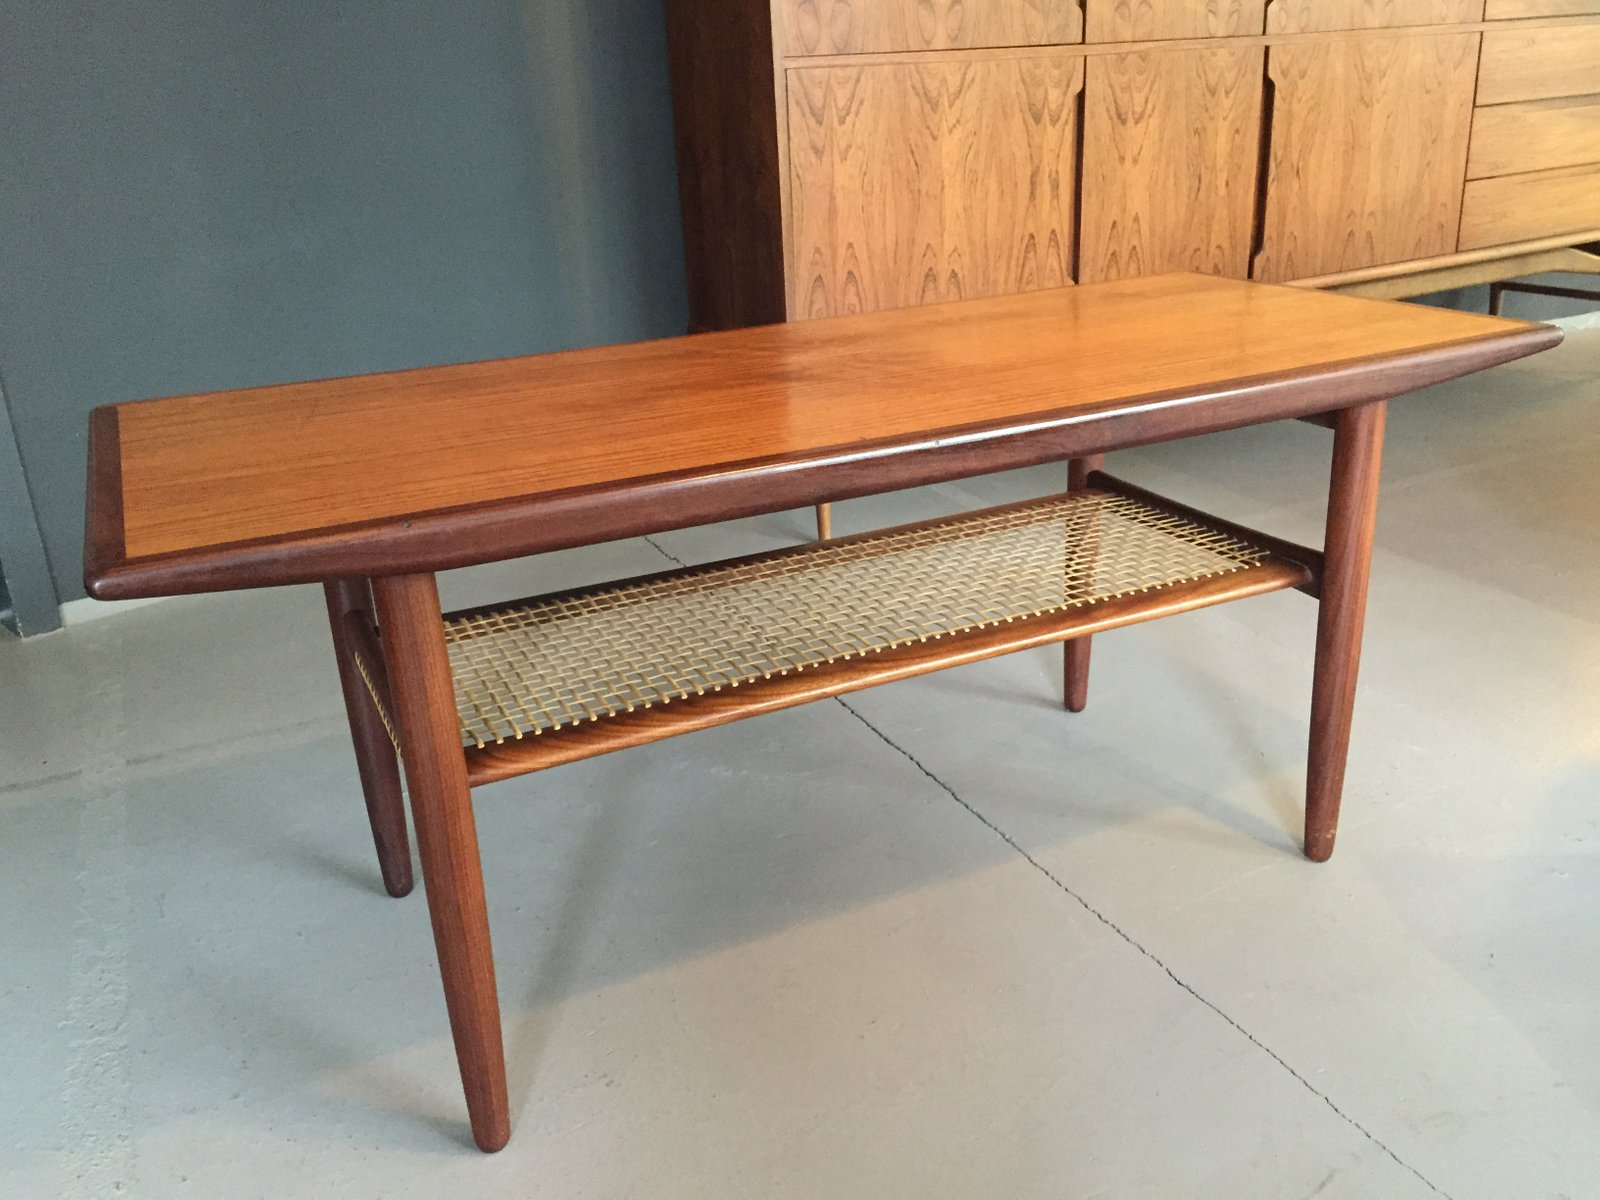 danish teak coffee table from c.f. christensen a/s, 1960 for sale